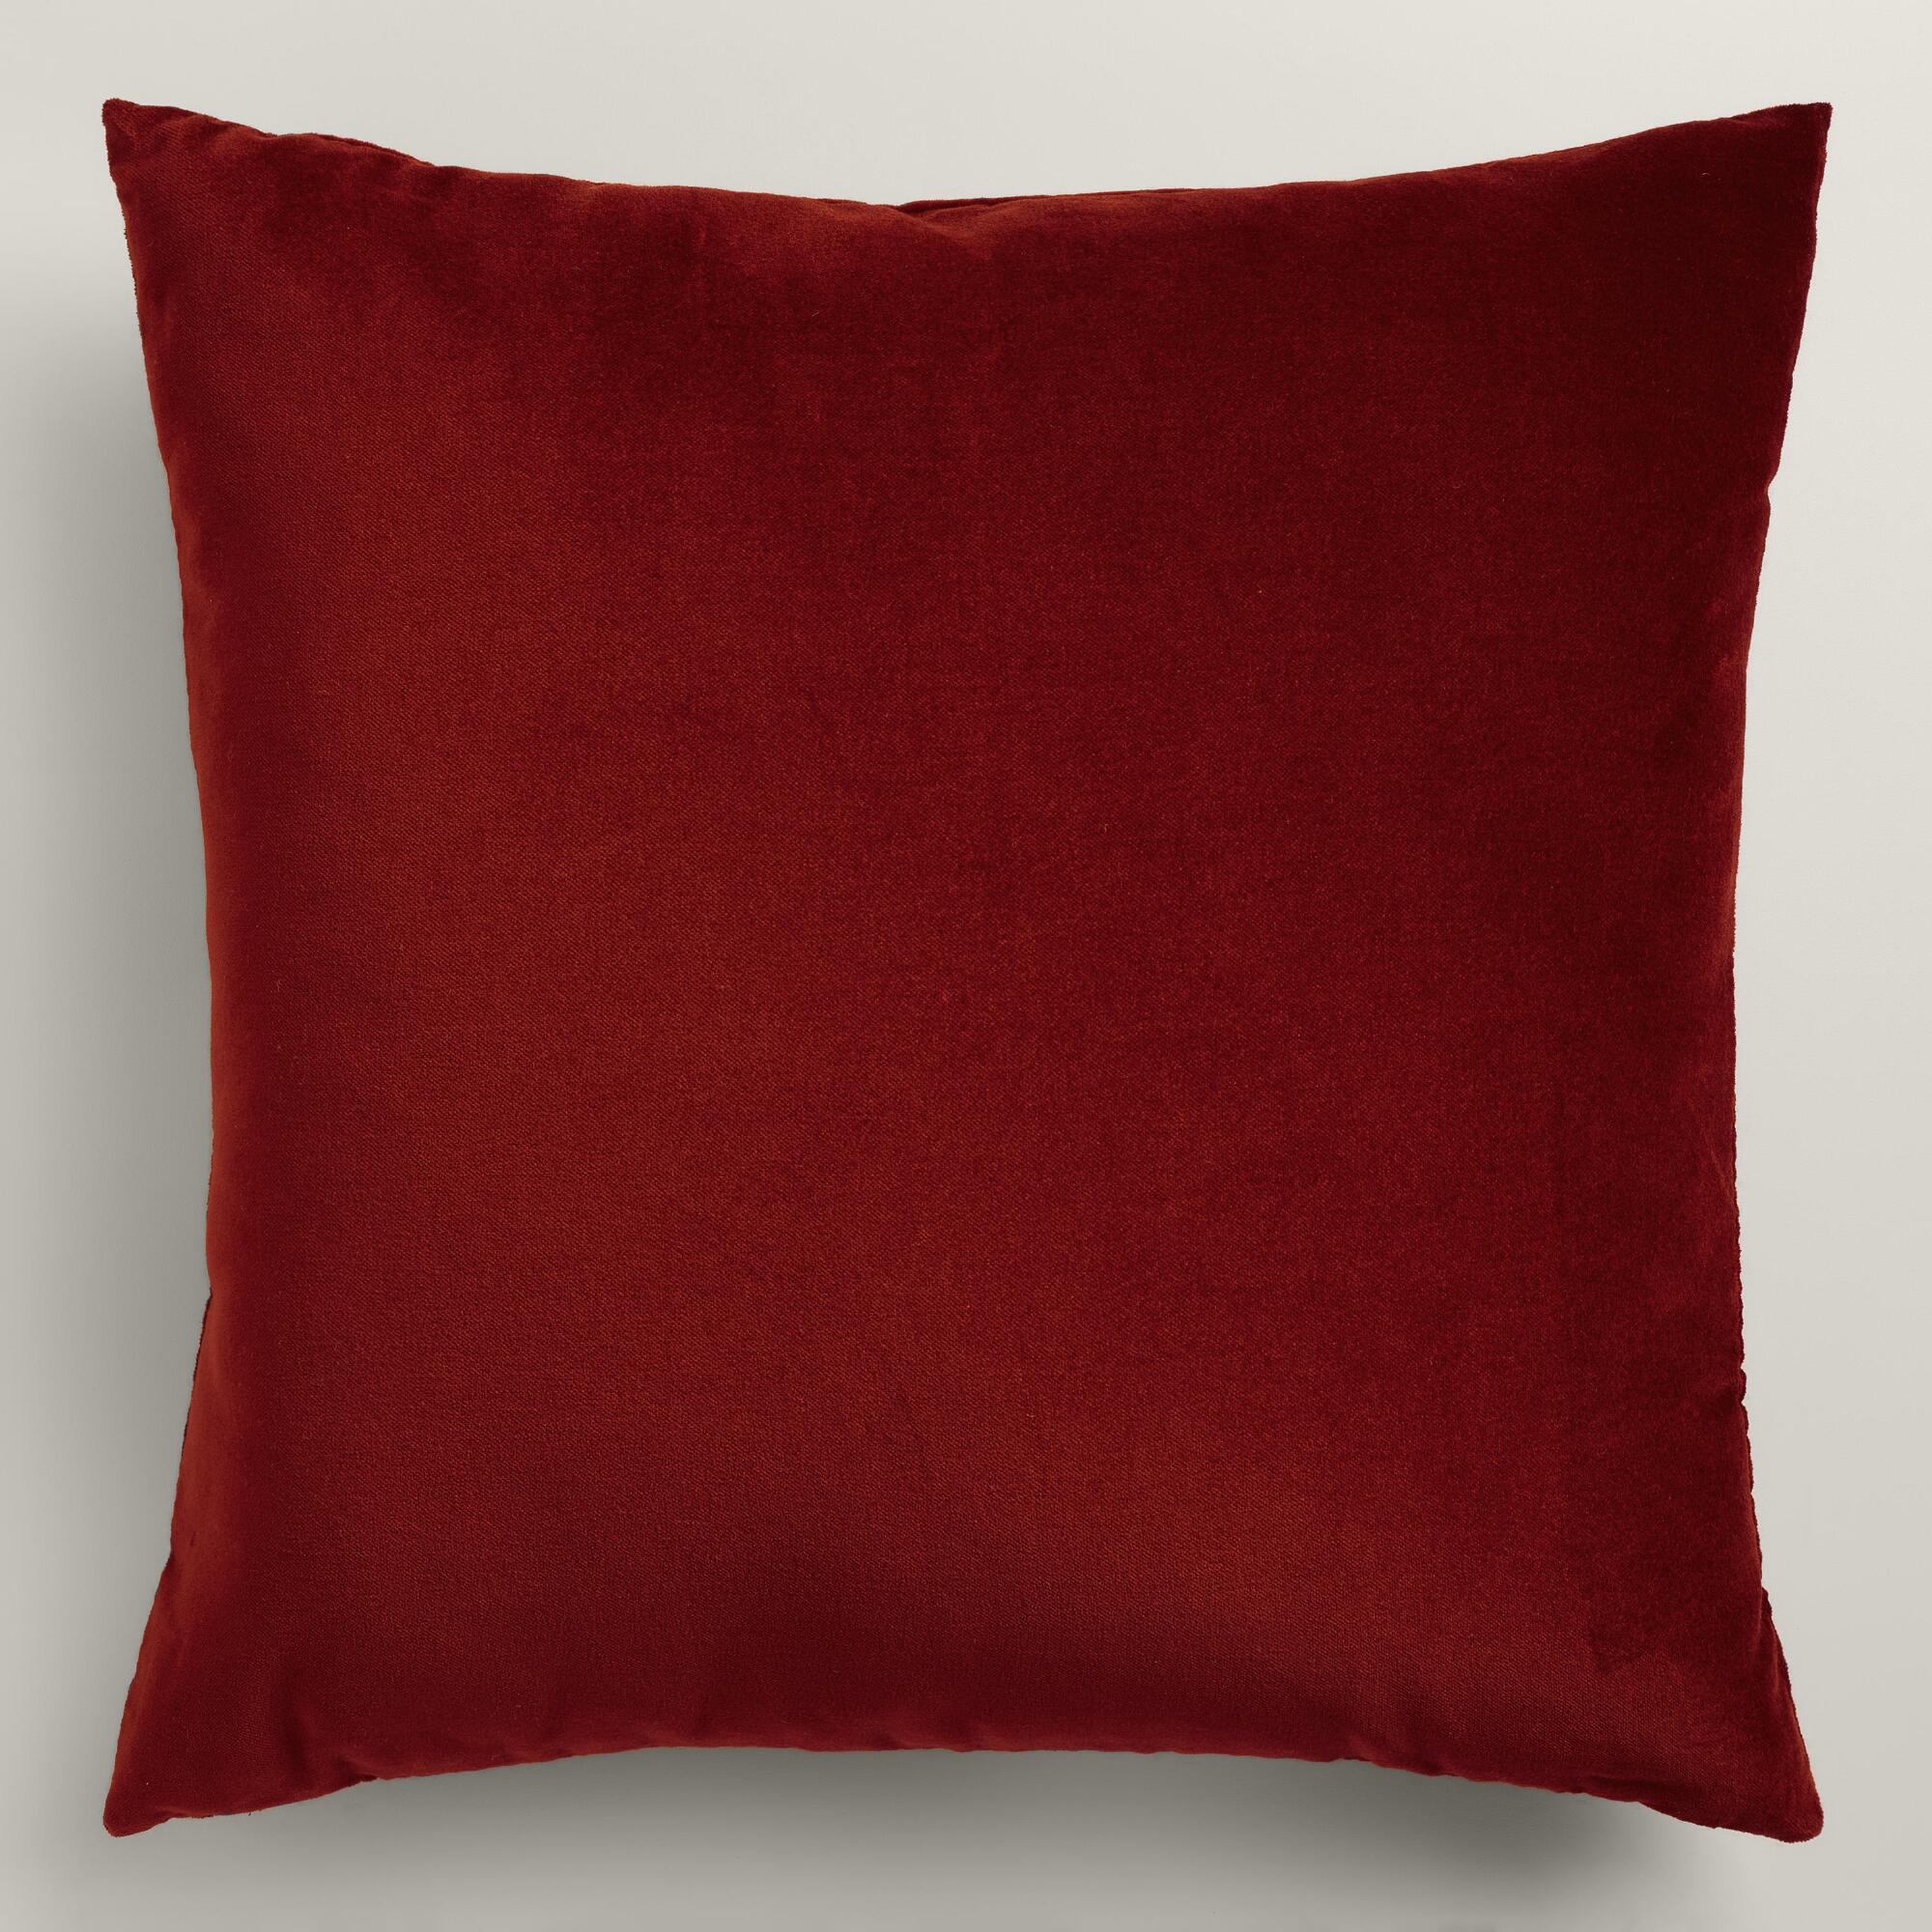 Throw Pillows Velvet : Red Velvet Throw Pillow World Market